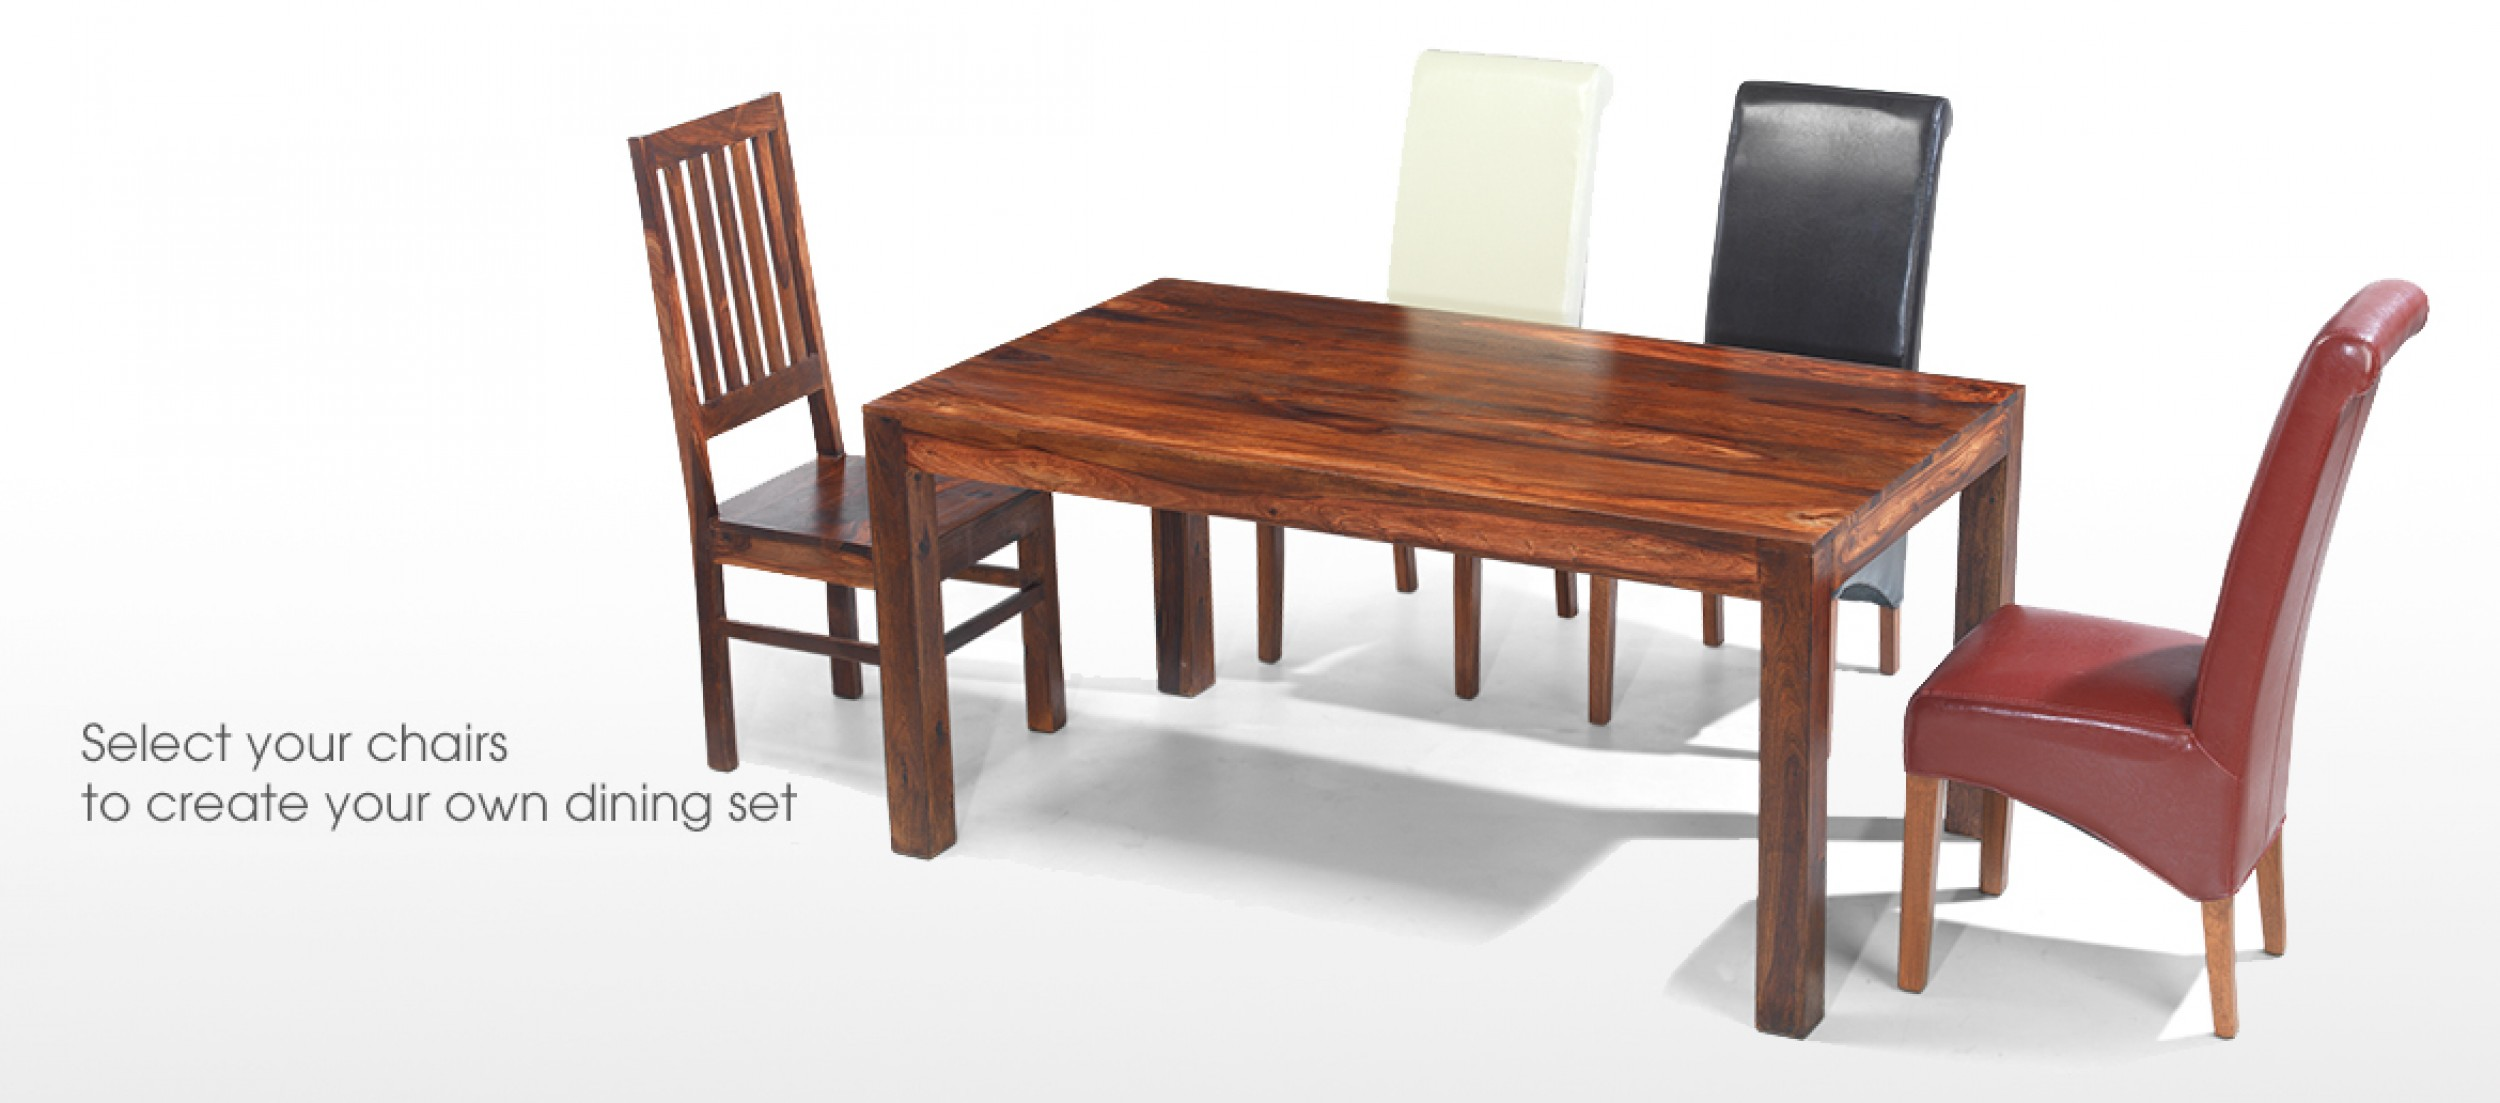 Cube sheesham 140 cm dining table and 6 chairs quercus for Sheesham dining table